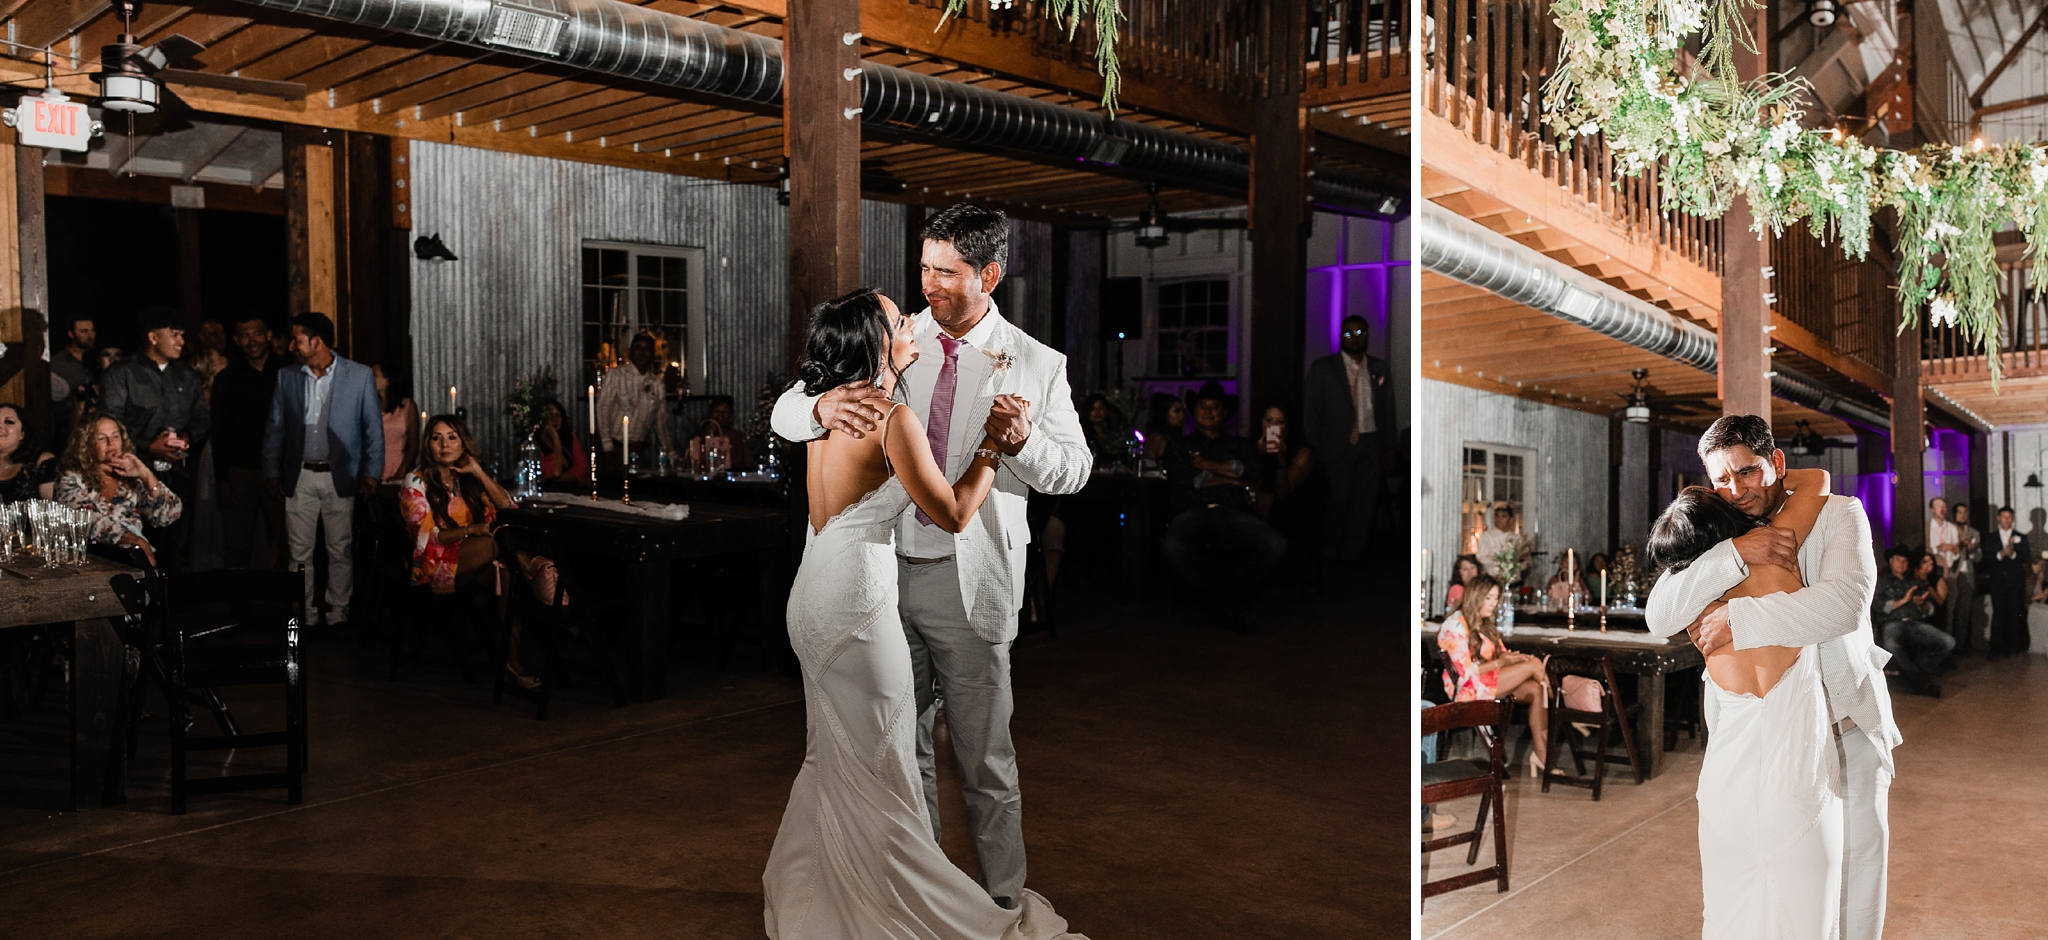 Alicia+lucia+photography+-+albuquerque+wedding+photographer+-+santa+fe+wedding+photography+-+new+mexico+wedding+photographer+-+new+mexico+wedding+-+new+mexico+wedding+-+barn+wedding+-+enchanted+vine+barn+wedding+-+ruidoso+wedding_0165.jpg